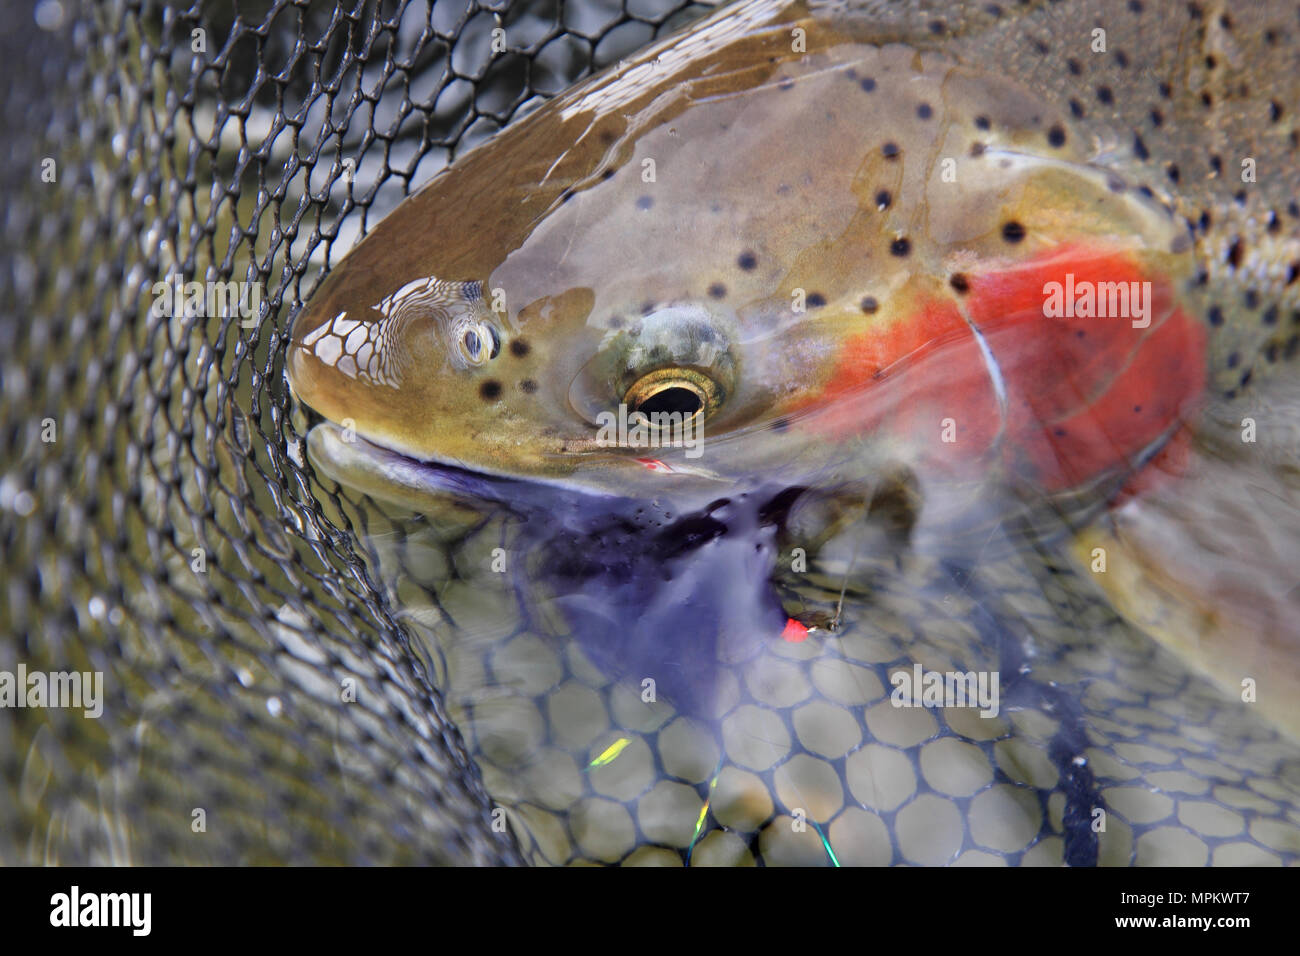 closeup steelhead trout with fly lure in mouth - Stock Image